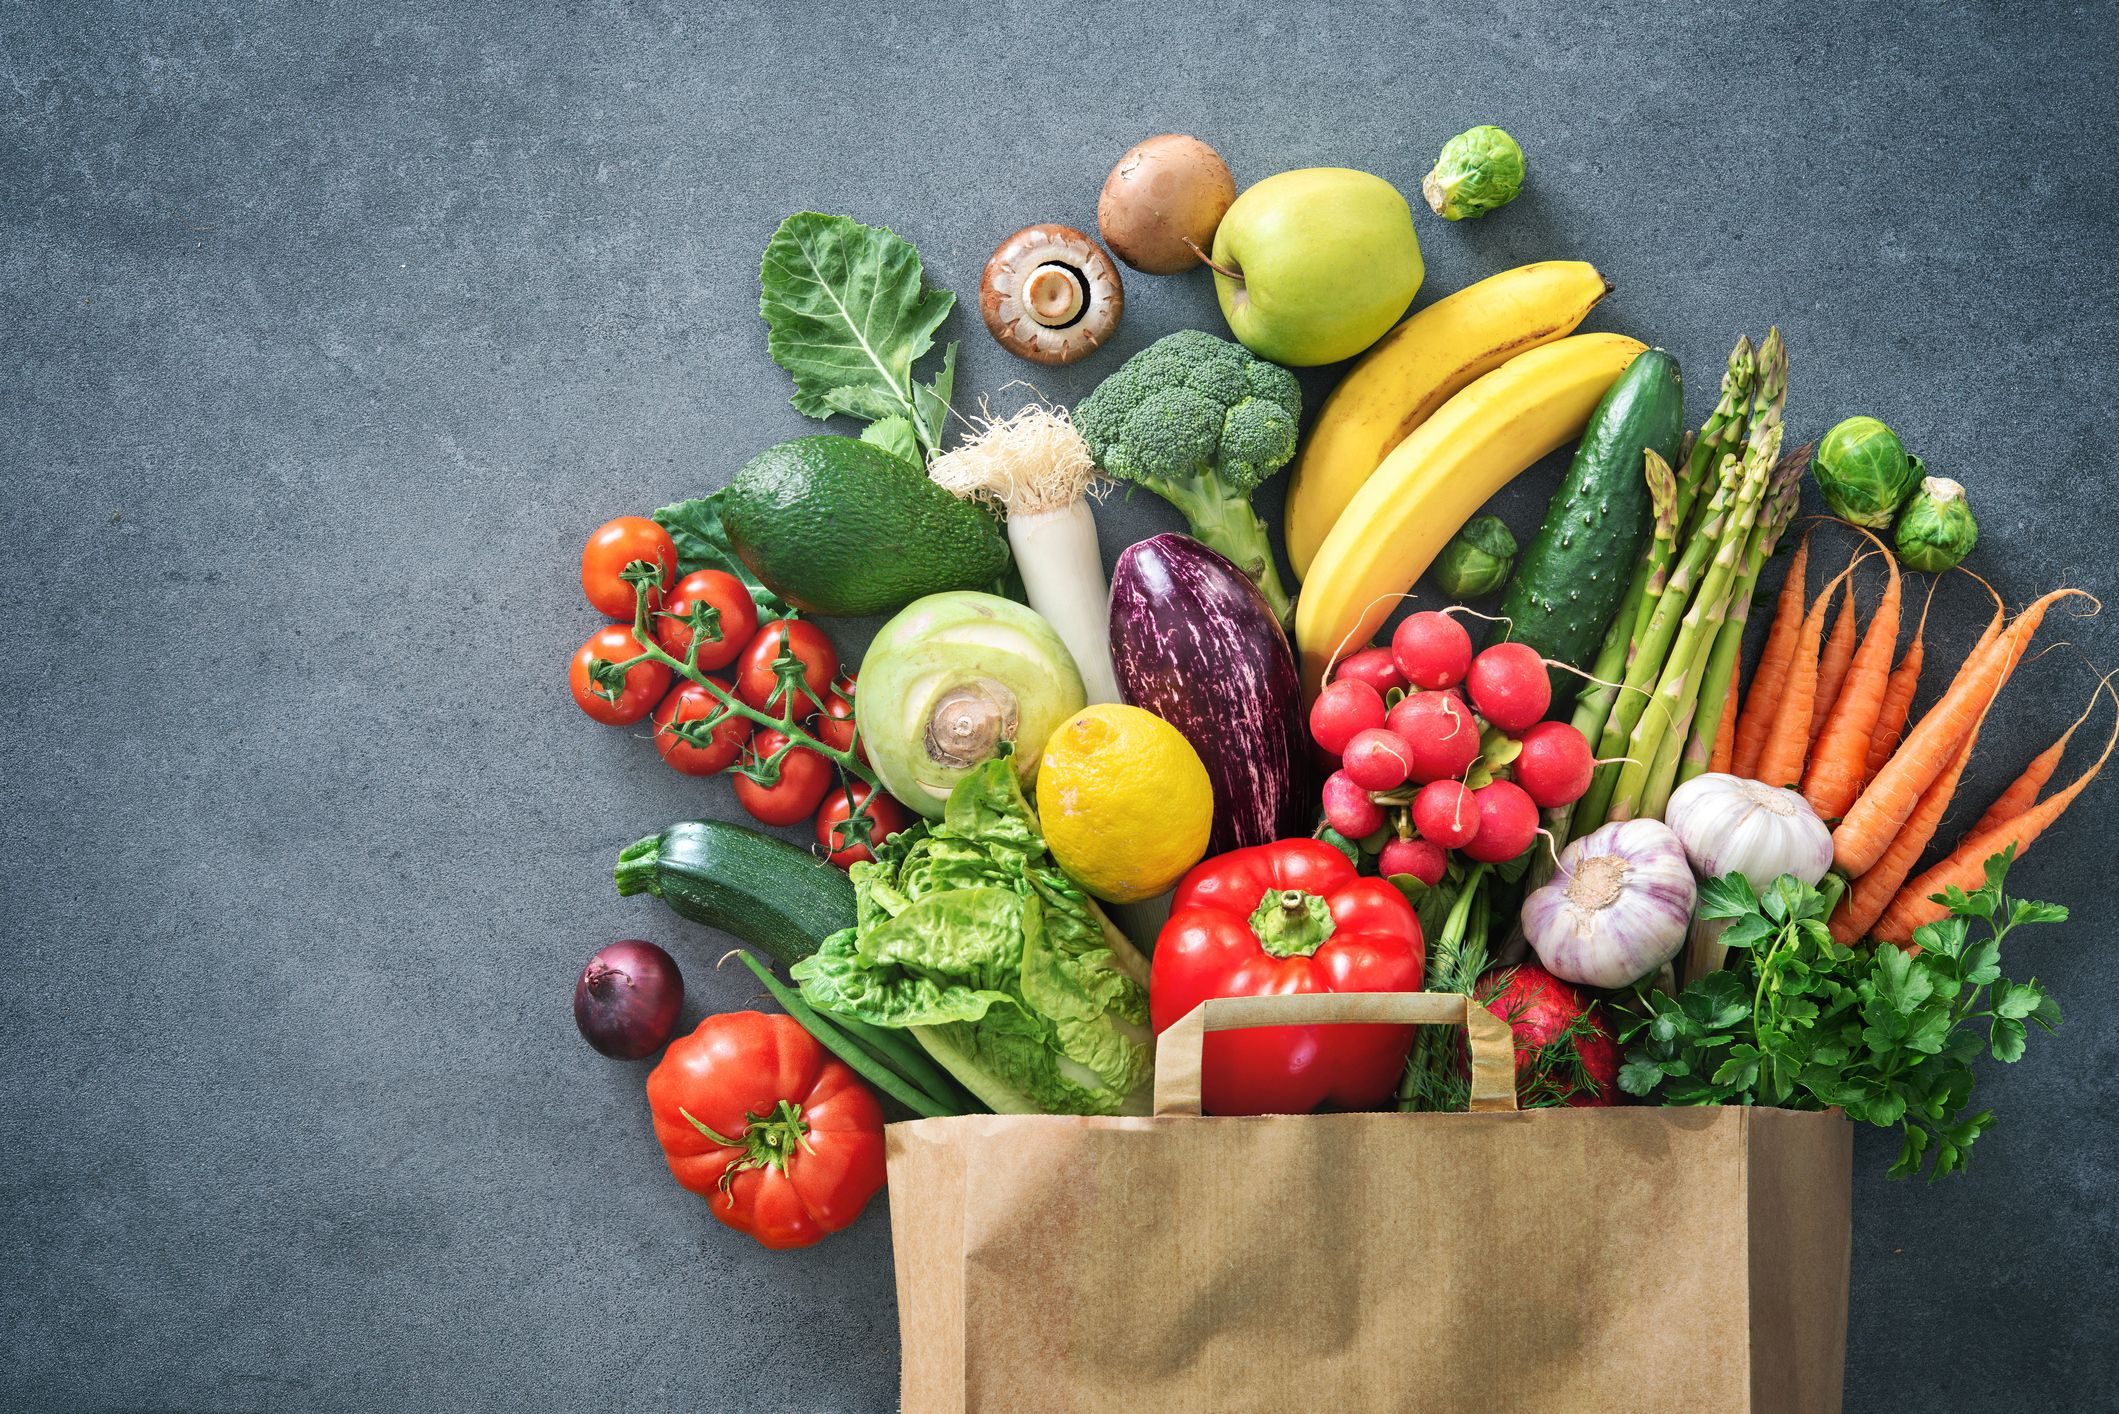 Is it safe to buy food products online?